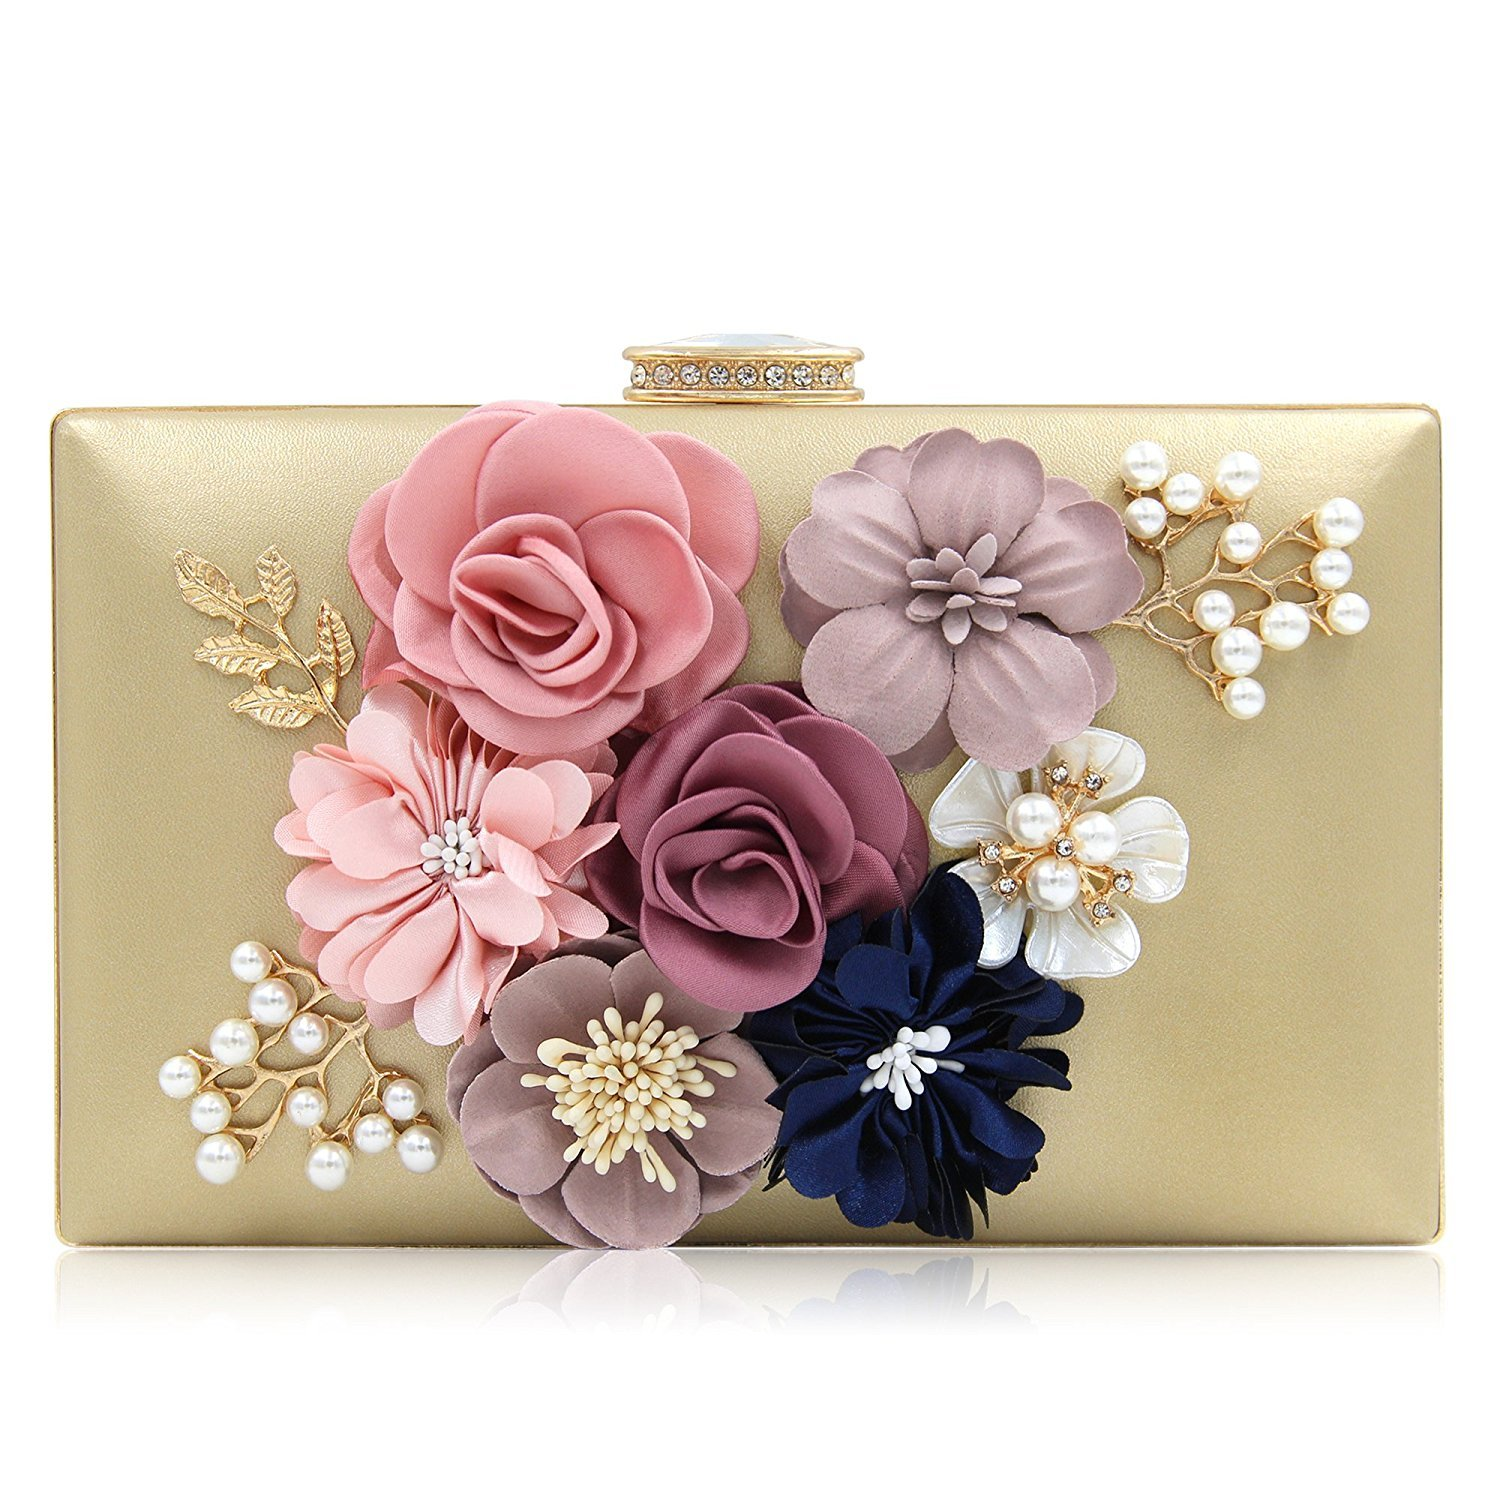 PARADOX (LABEL) Women Flower Clutches Evening Handbags Wedding Clutch Purse (Rose Gold) product image